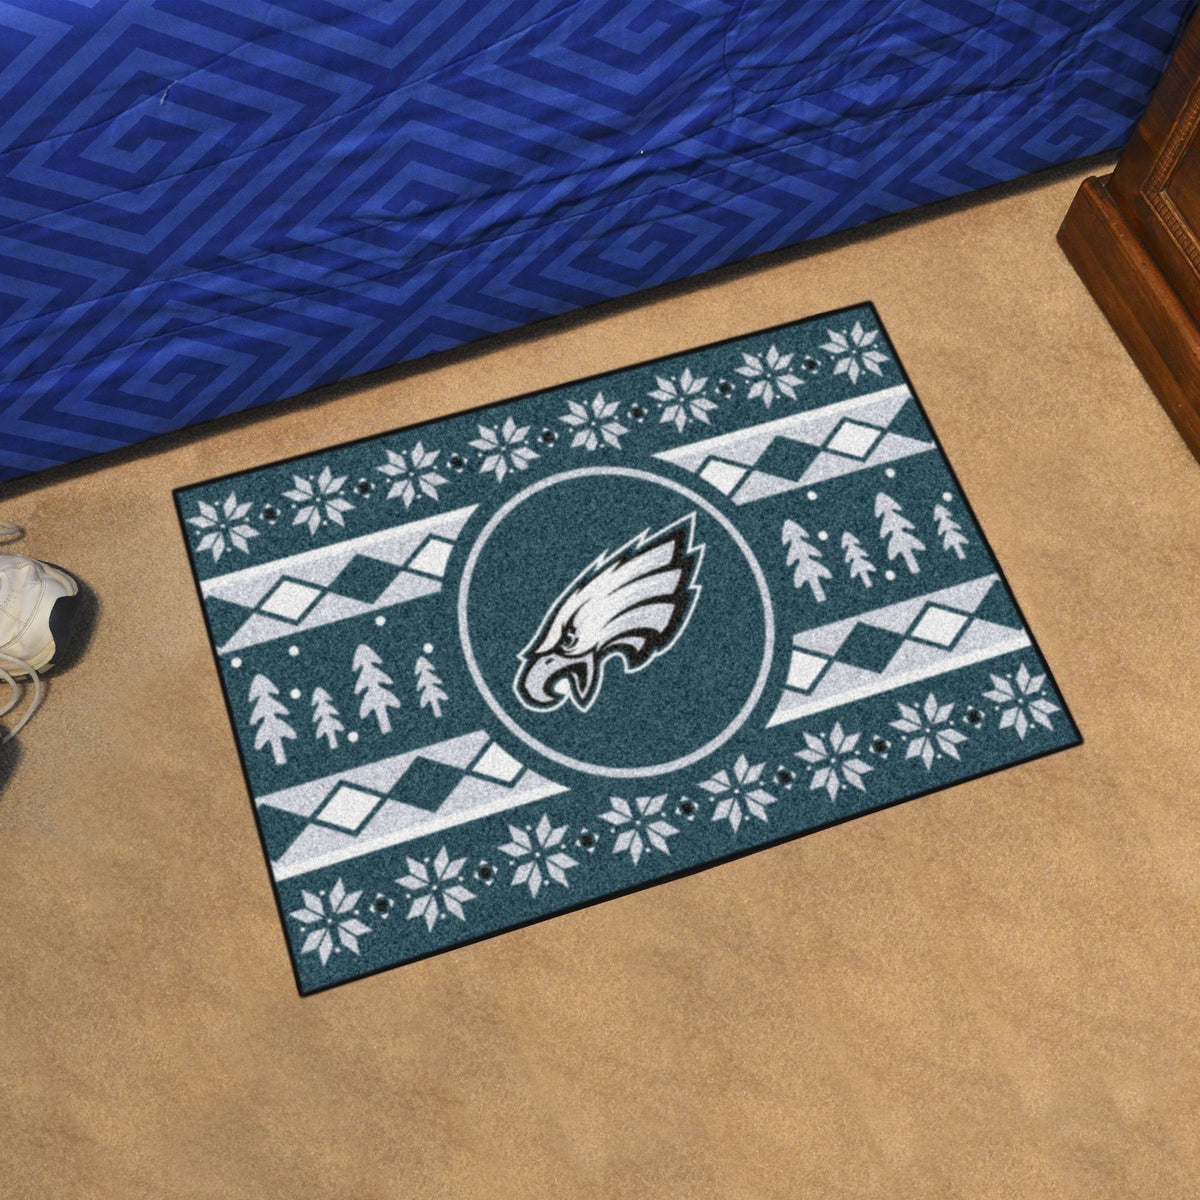 "NFL - Holiday Sweater Starter Mat, 19"" x 30"" NFL Mats, Rectangular Mats, Holiday Sweater Starter Mat, NFL, Home Fan Mats Philadelphia Eagles"